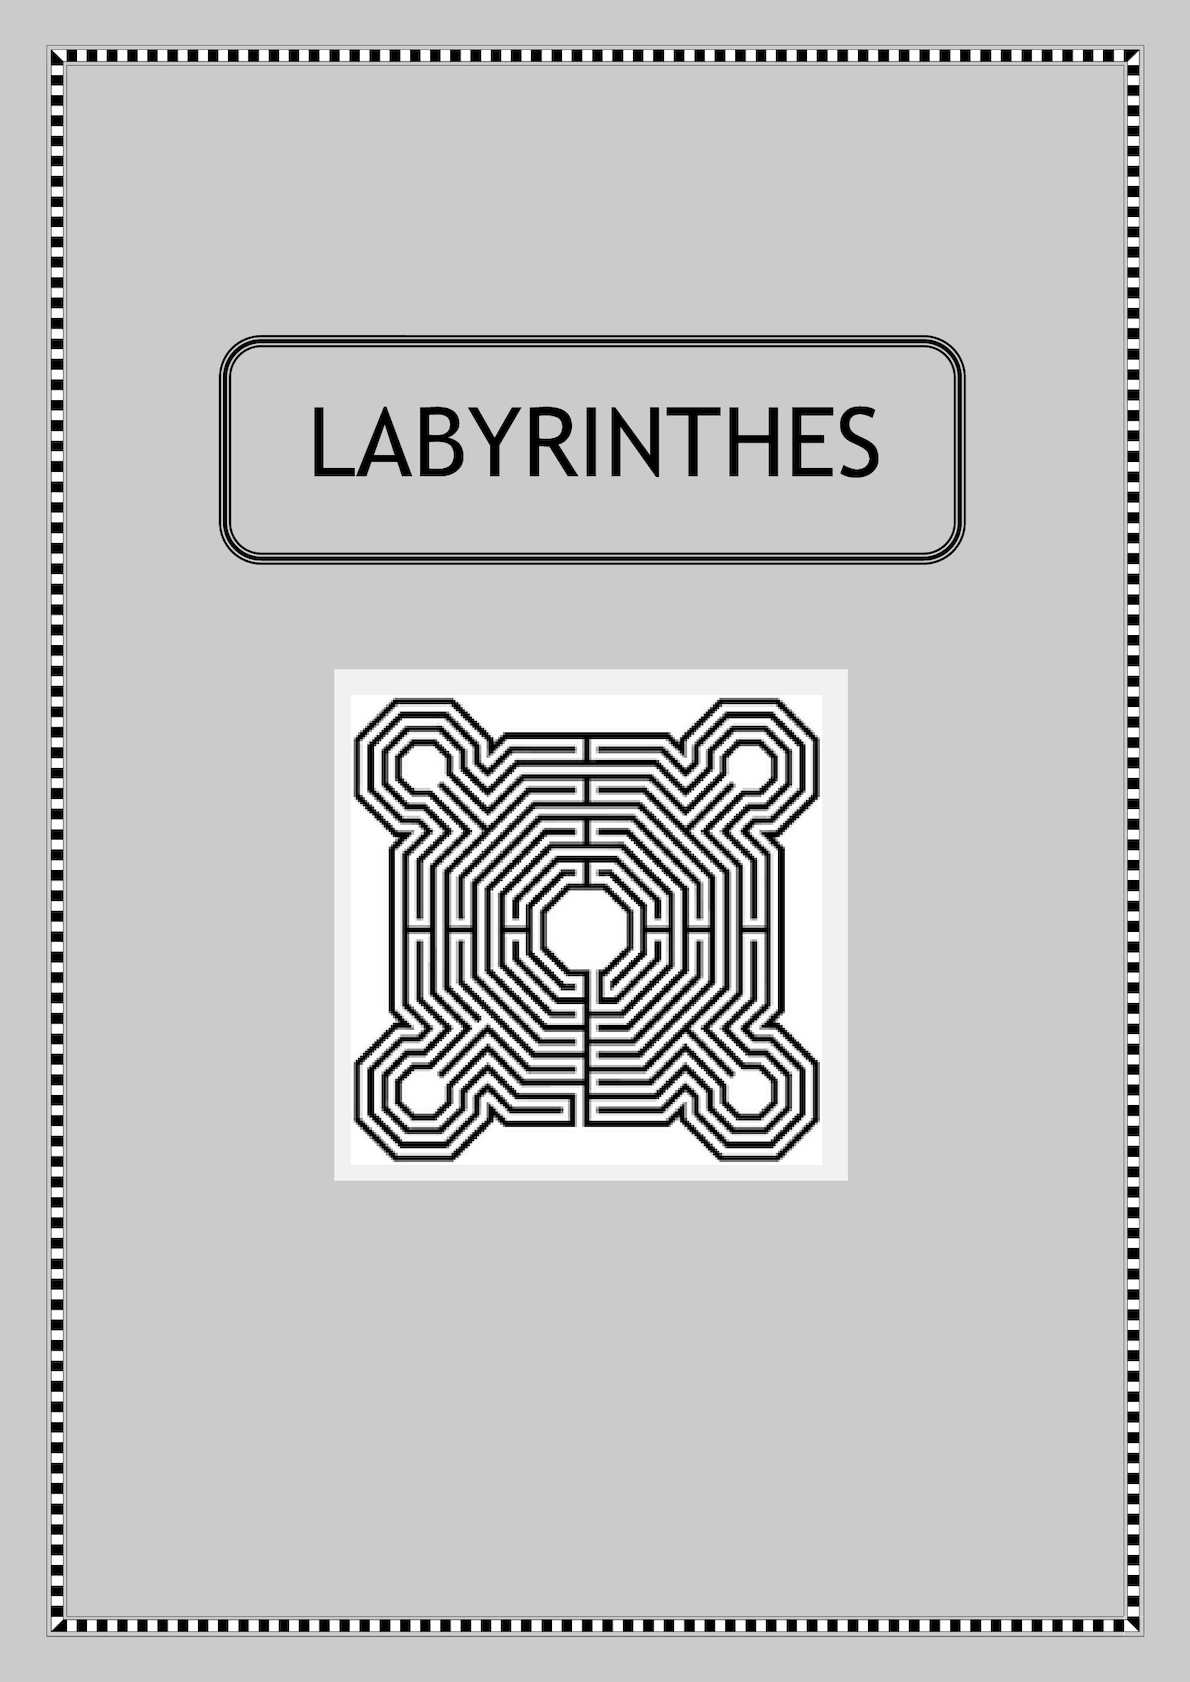 Labyrinthe - Vue d'ensemble